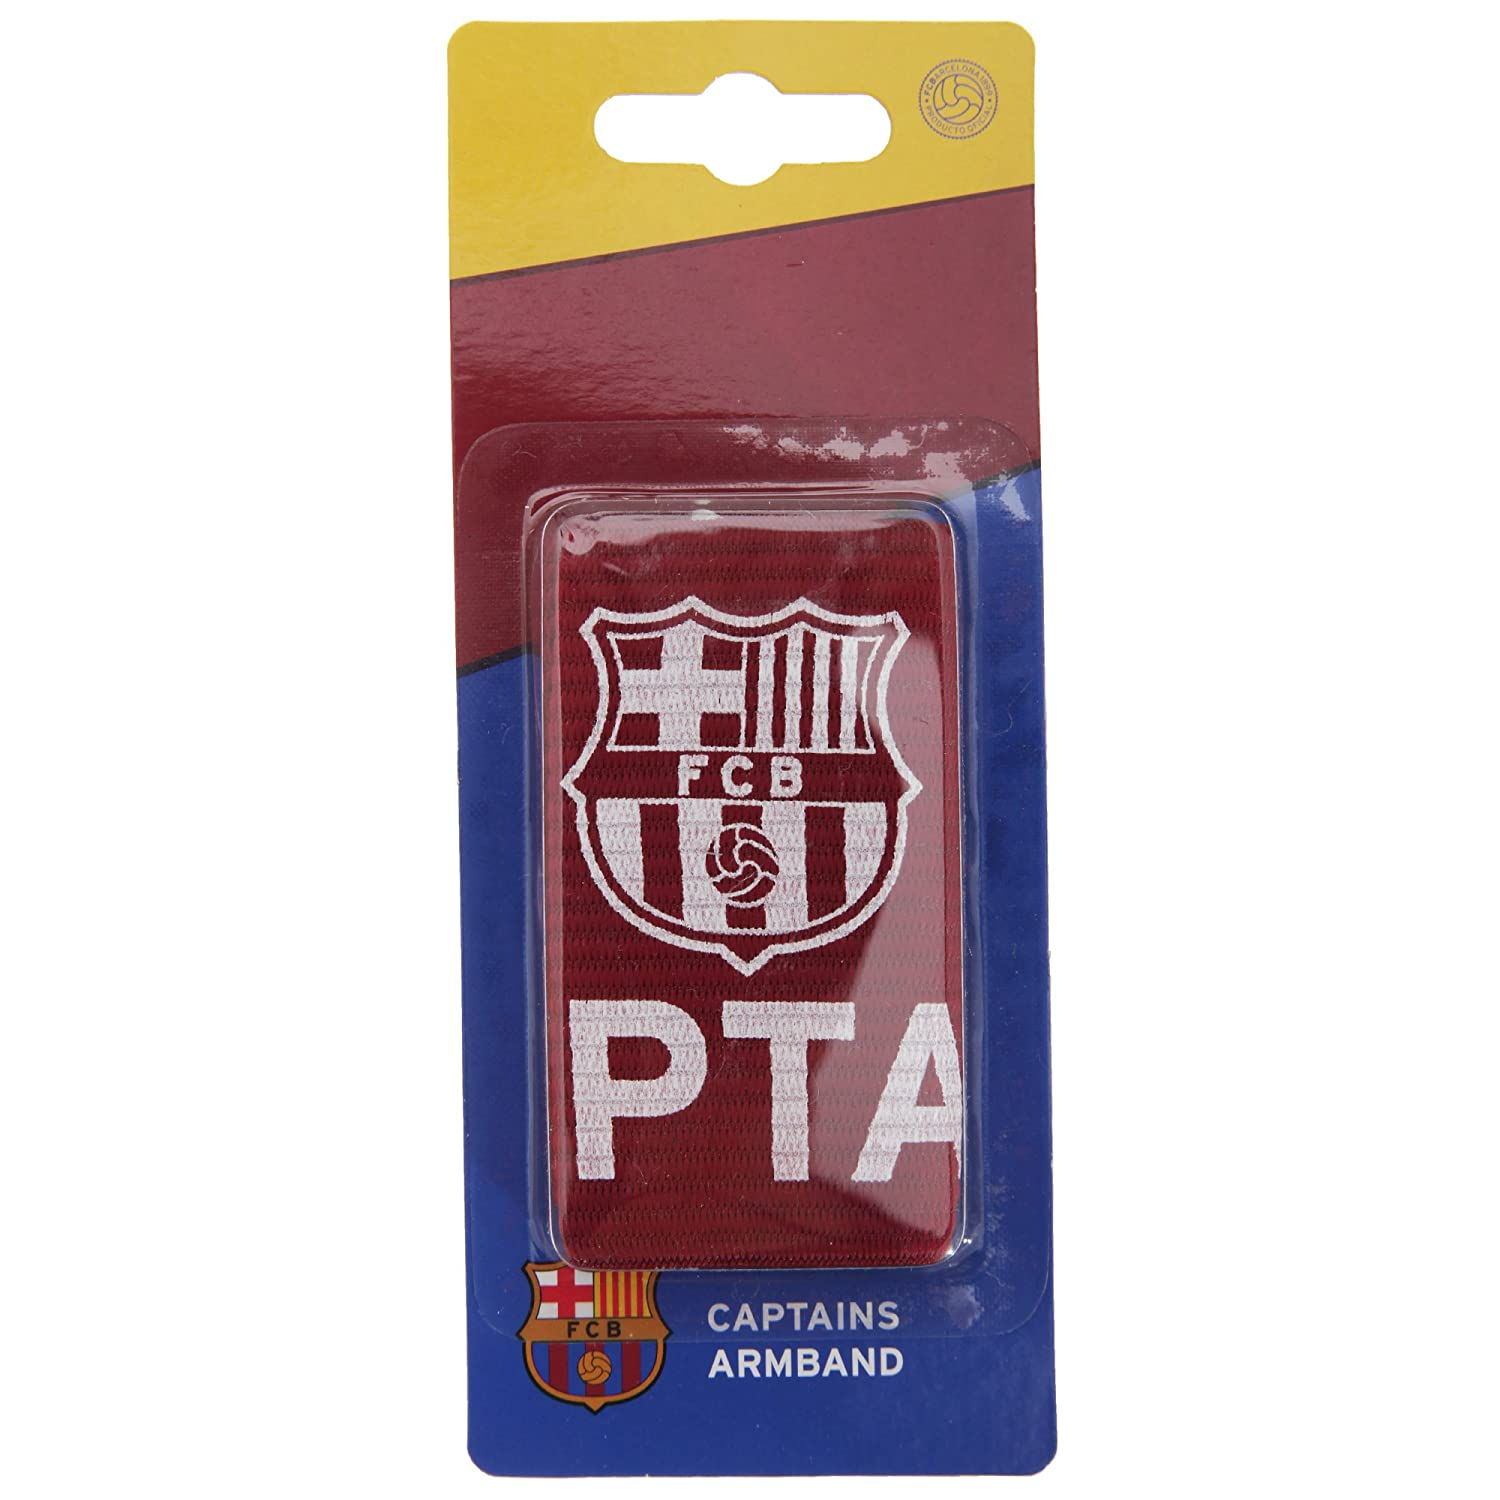 FC Barcelona Official Captains Football Crest Sports Armband (One Size) (Burgundy/White) UTSG3019_1